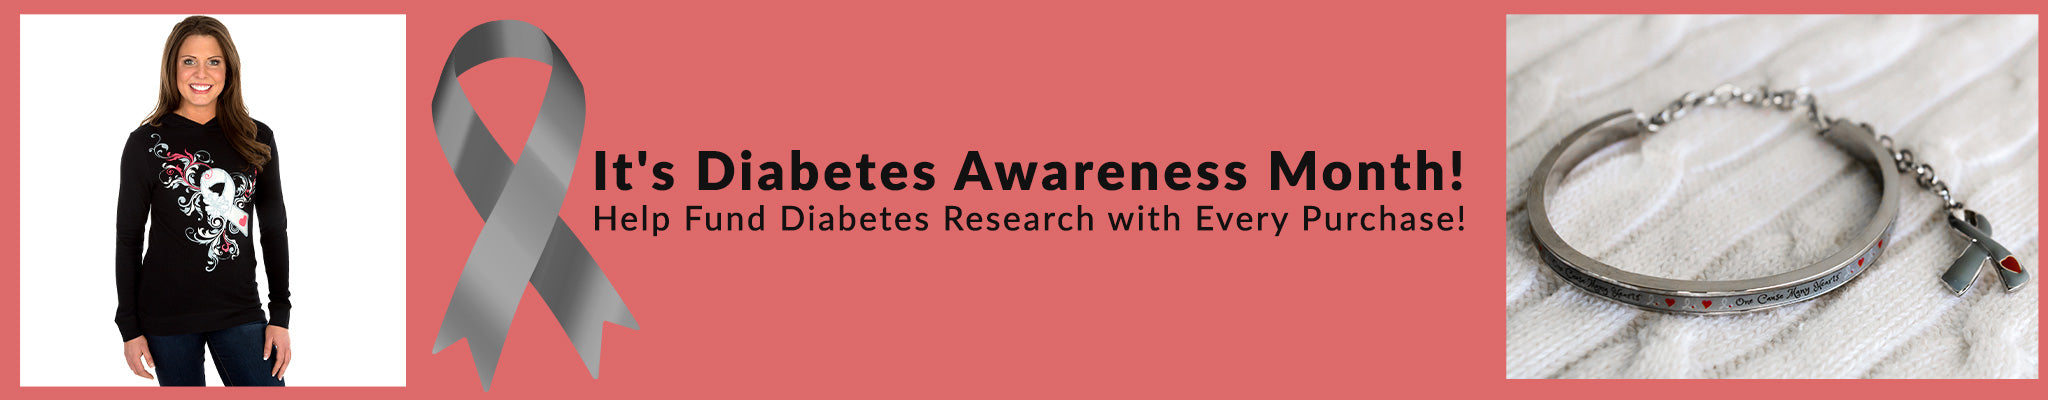 It's Diabetes Awareness Month! | Help Fund Diabetes Research with Every Purchase!